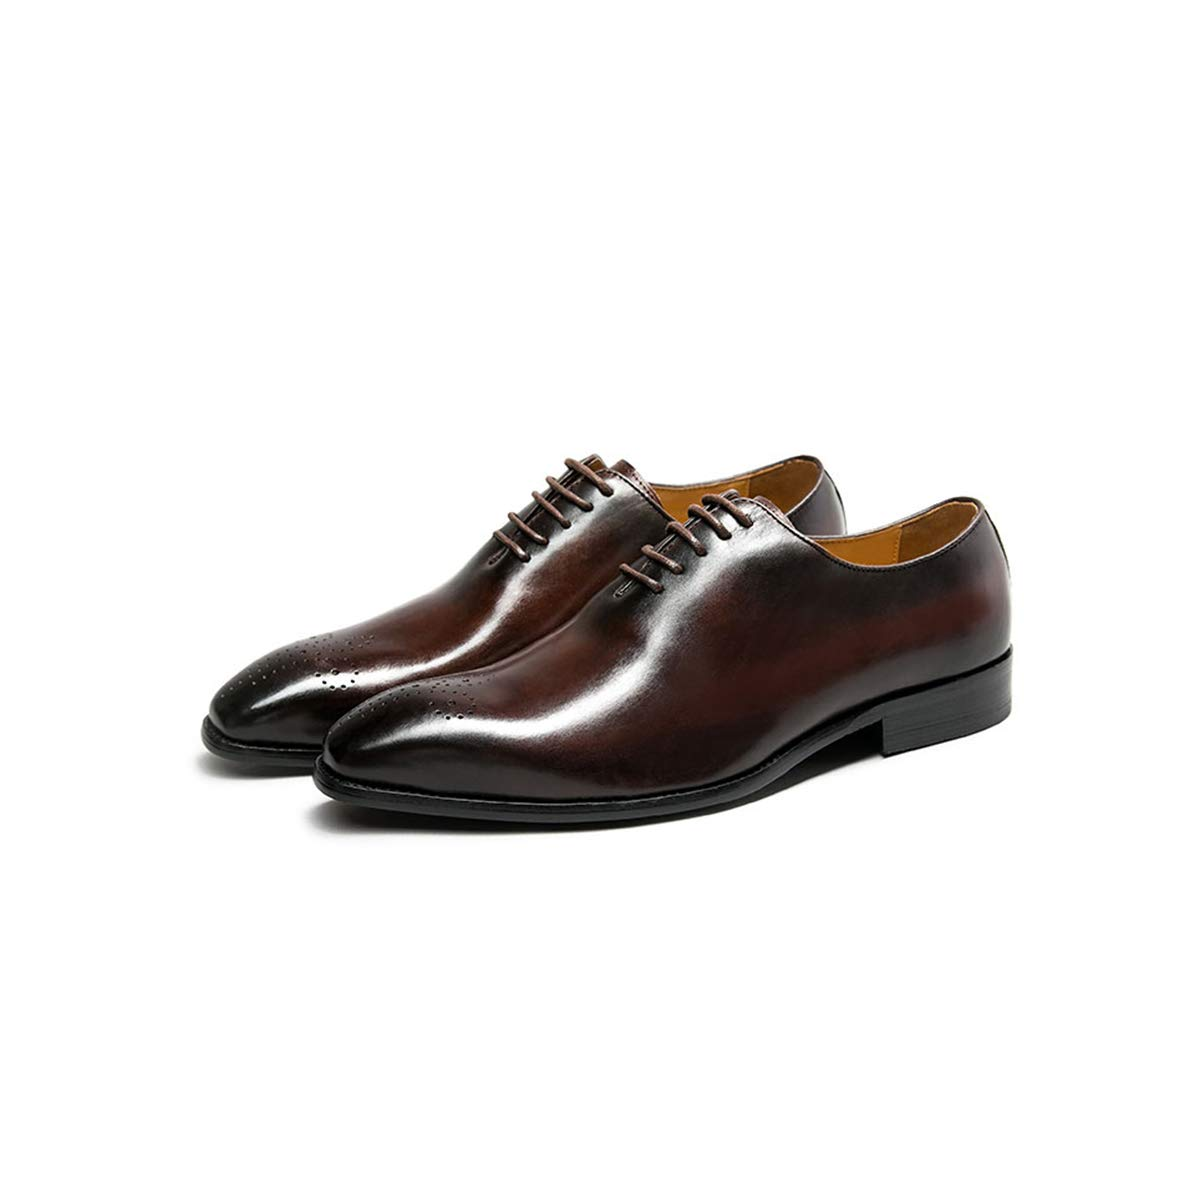 52013a92ca12 Where To Buy Quality Dress Shoes - raveitsafe